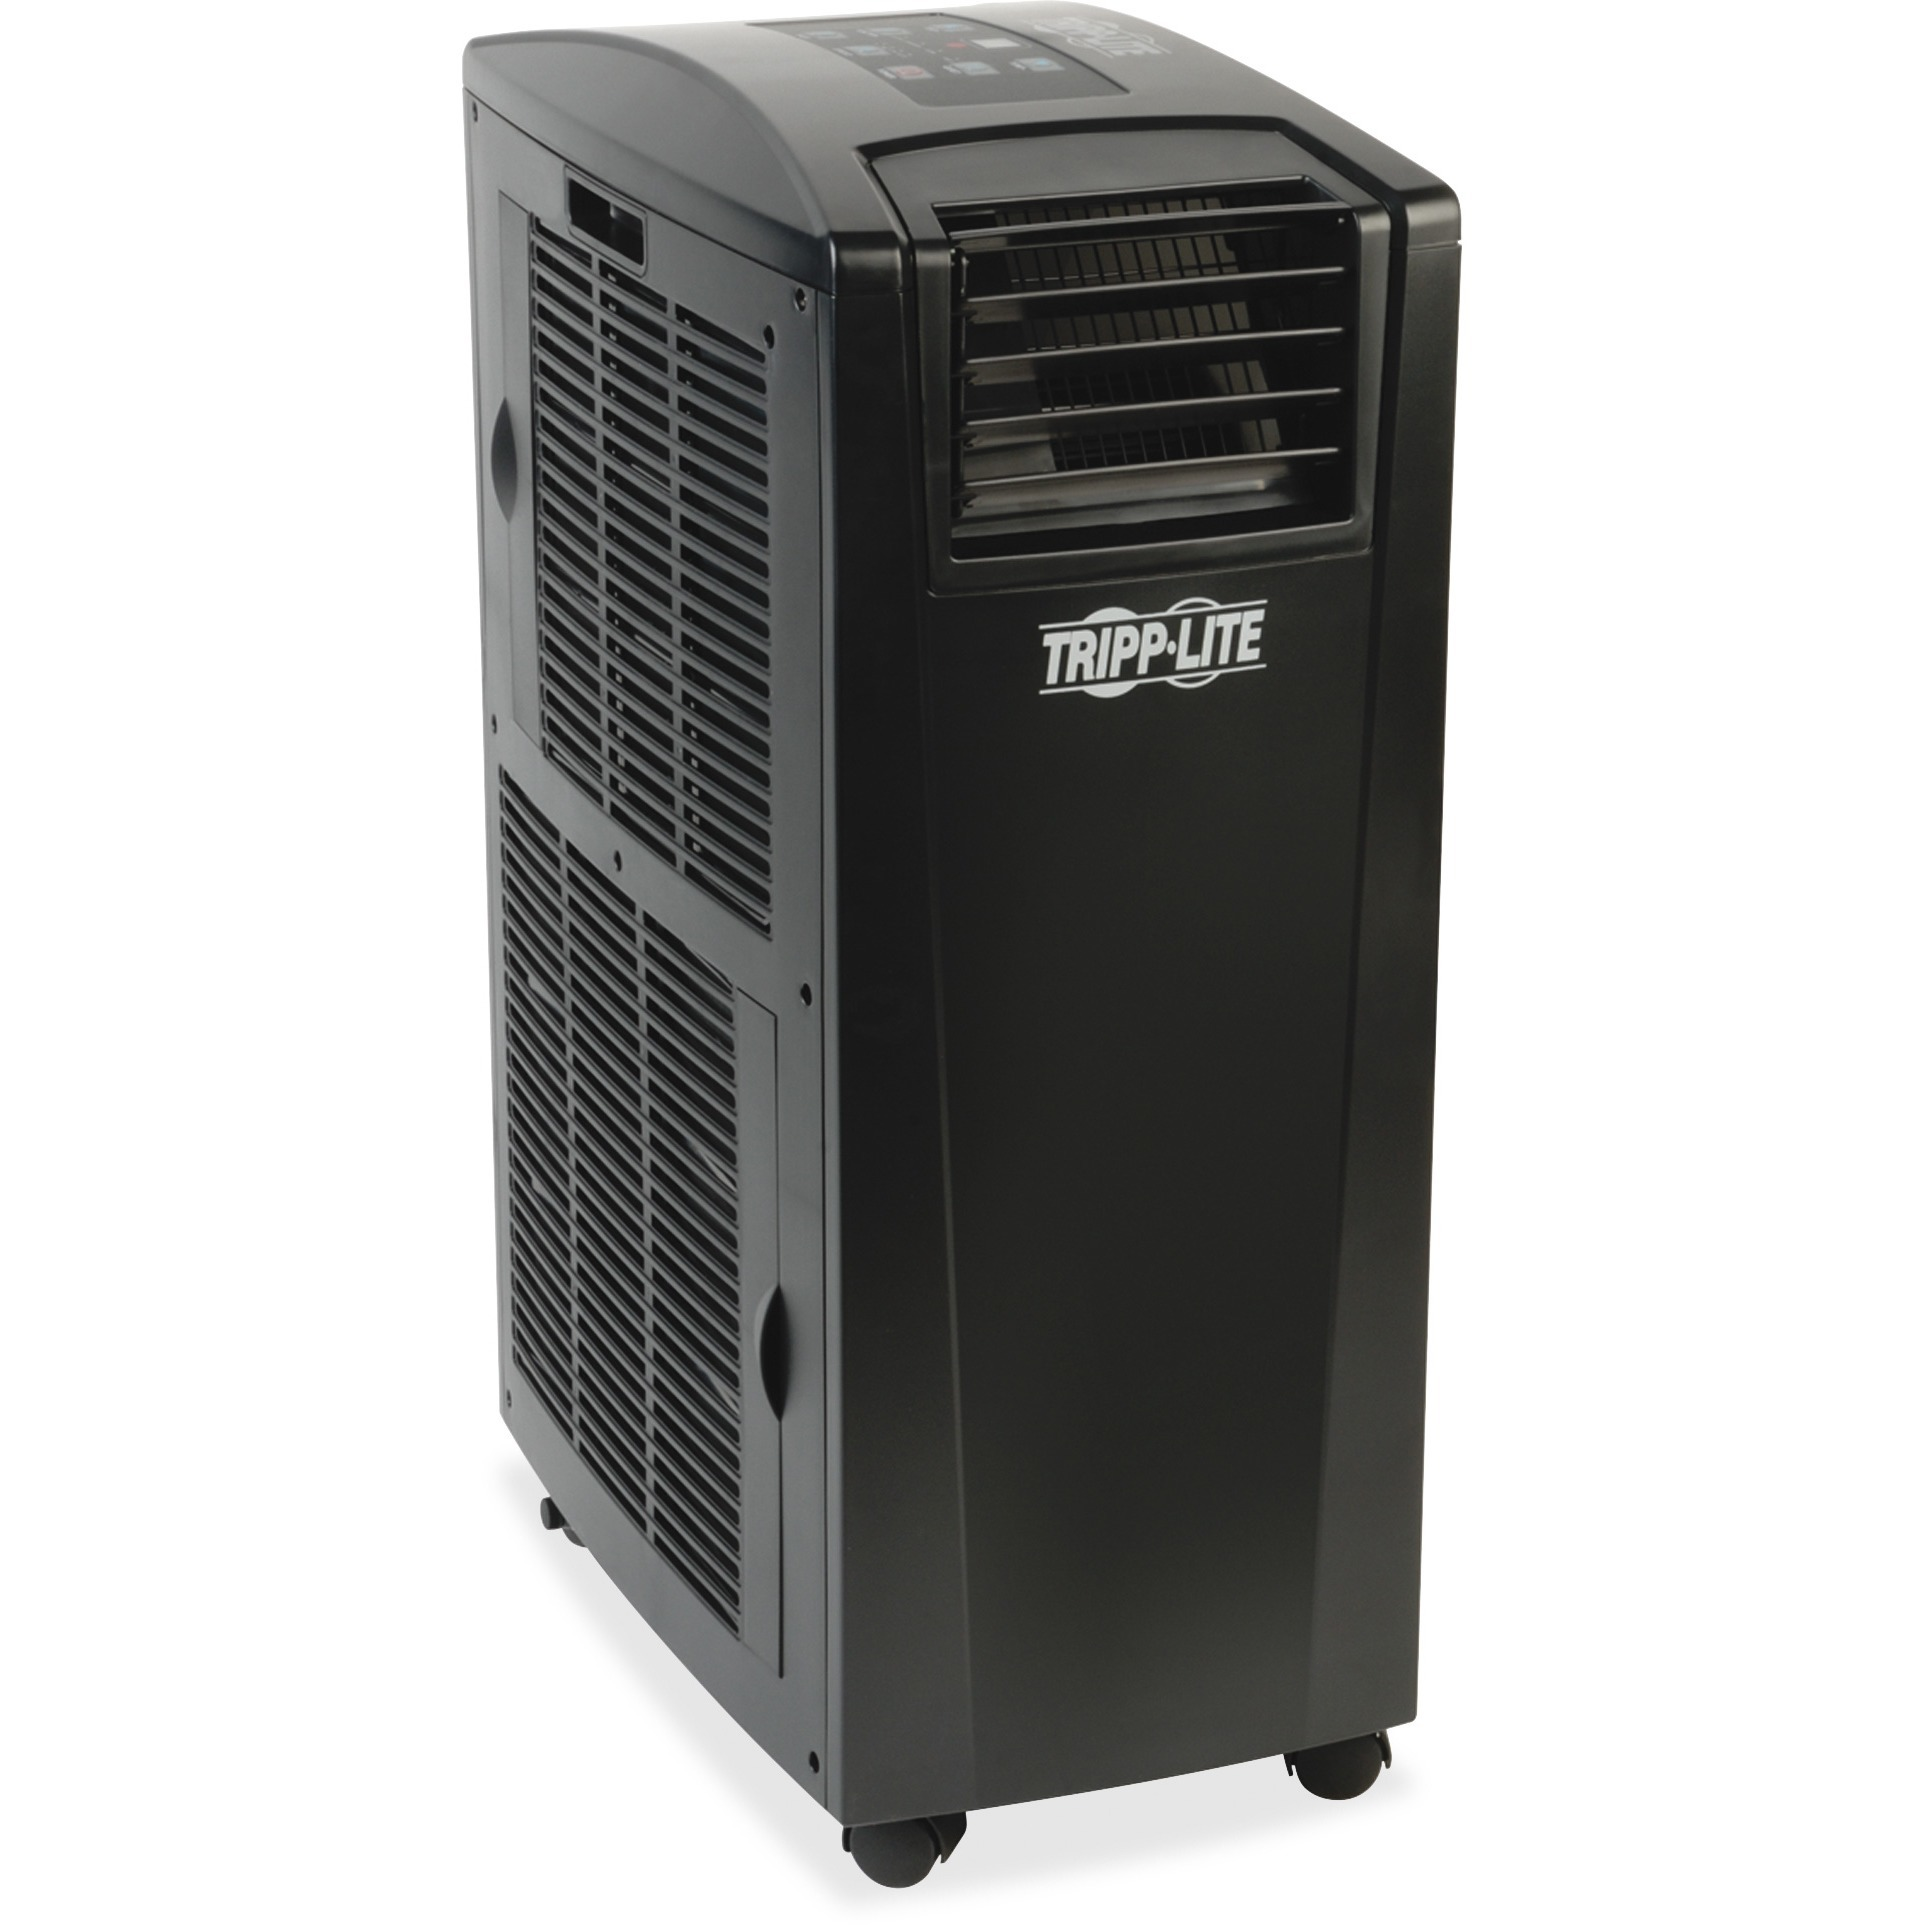 Tripp Lite, TRPSRCOOL12K, Self-Contained Portable Air Condition Unit, 1, Black